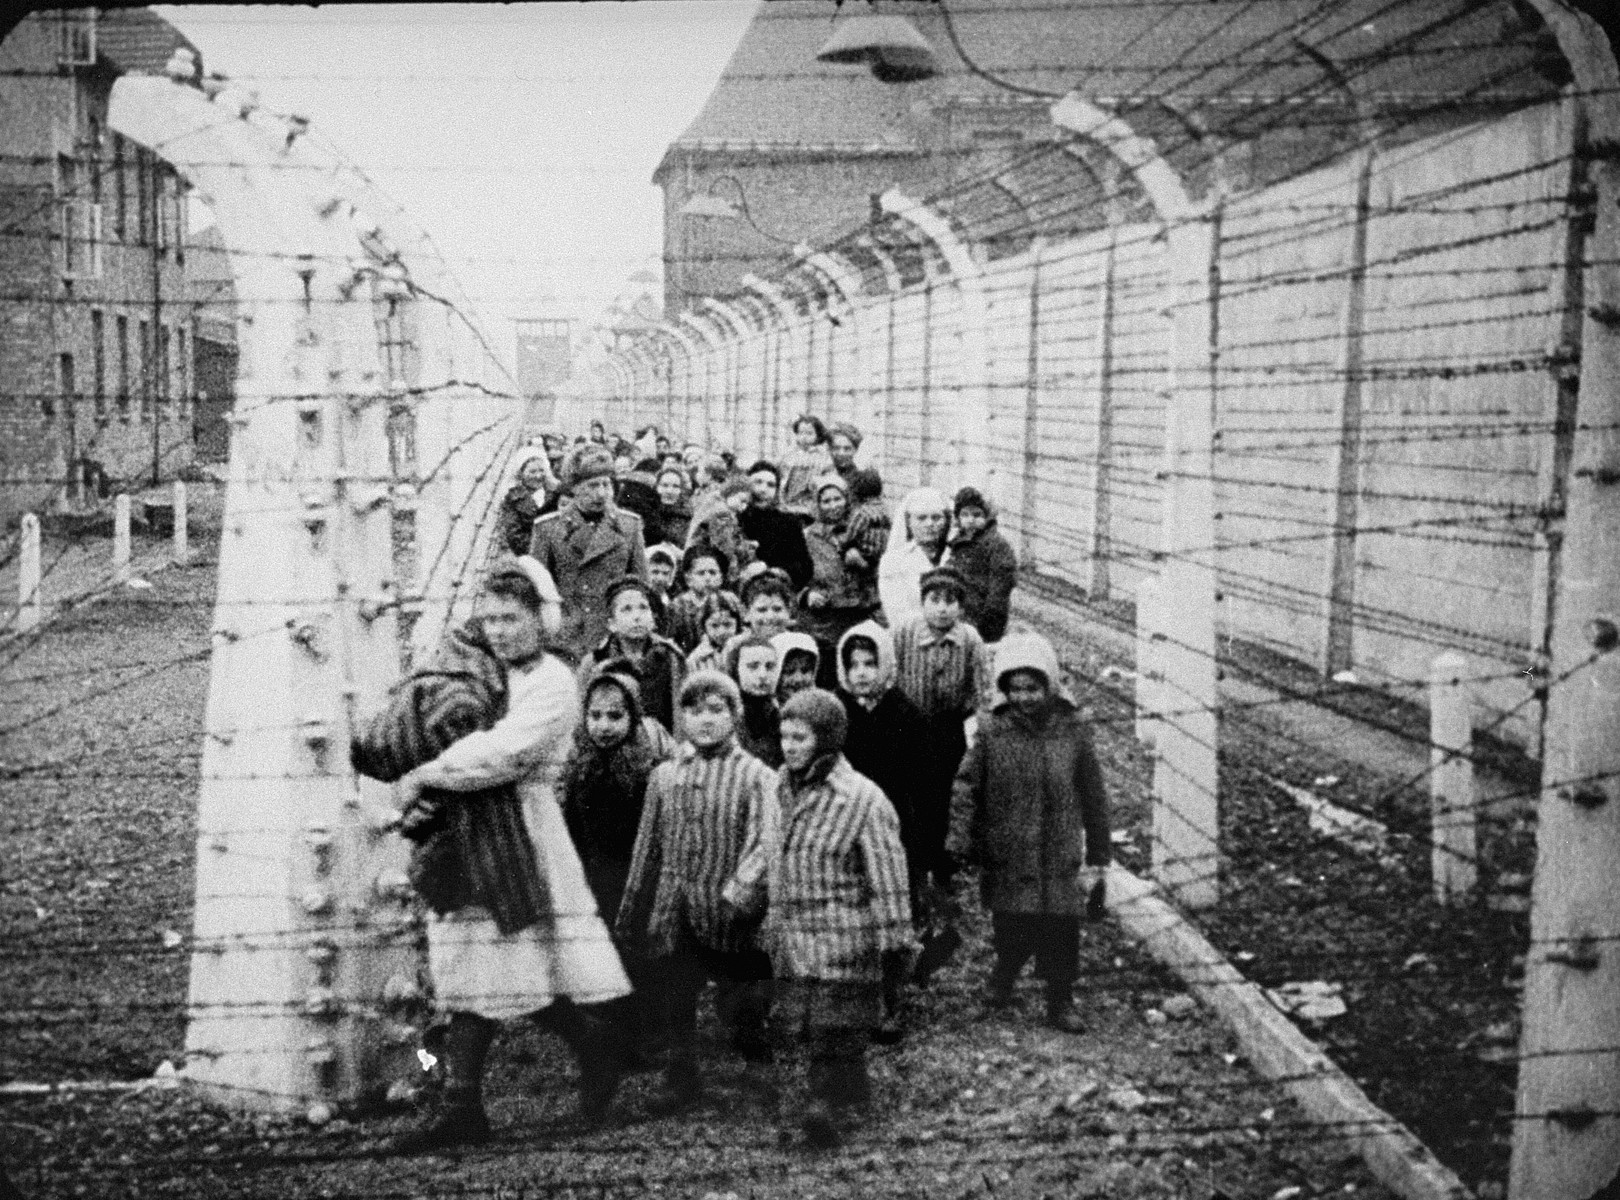 Wearing adult-size prisoner jackets, child survivors of Auschwitz are led by relief workers and Soviet soldiers through a narrow passage between two barbed-wire fences.  Standing next to the nurse are Miriam and Eva Mozes.  Behind them (wearing white hats) are Judy and Lea Csenghery.  Both sets of sisters are twins.  STILL PHOTOGRAPH FROM THE SOVIET FILM of the liberation of Auschwitz, taken by the film unit of the First Ukrainian Front.